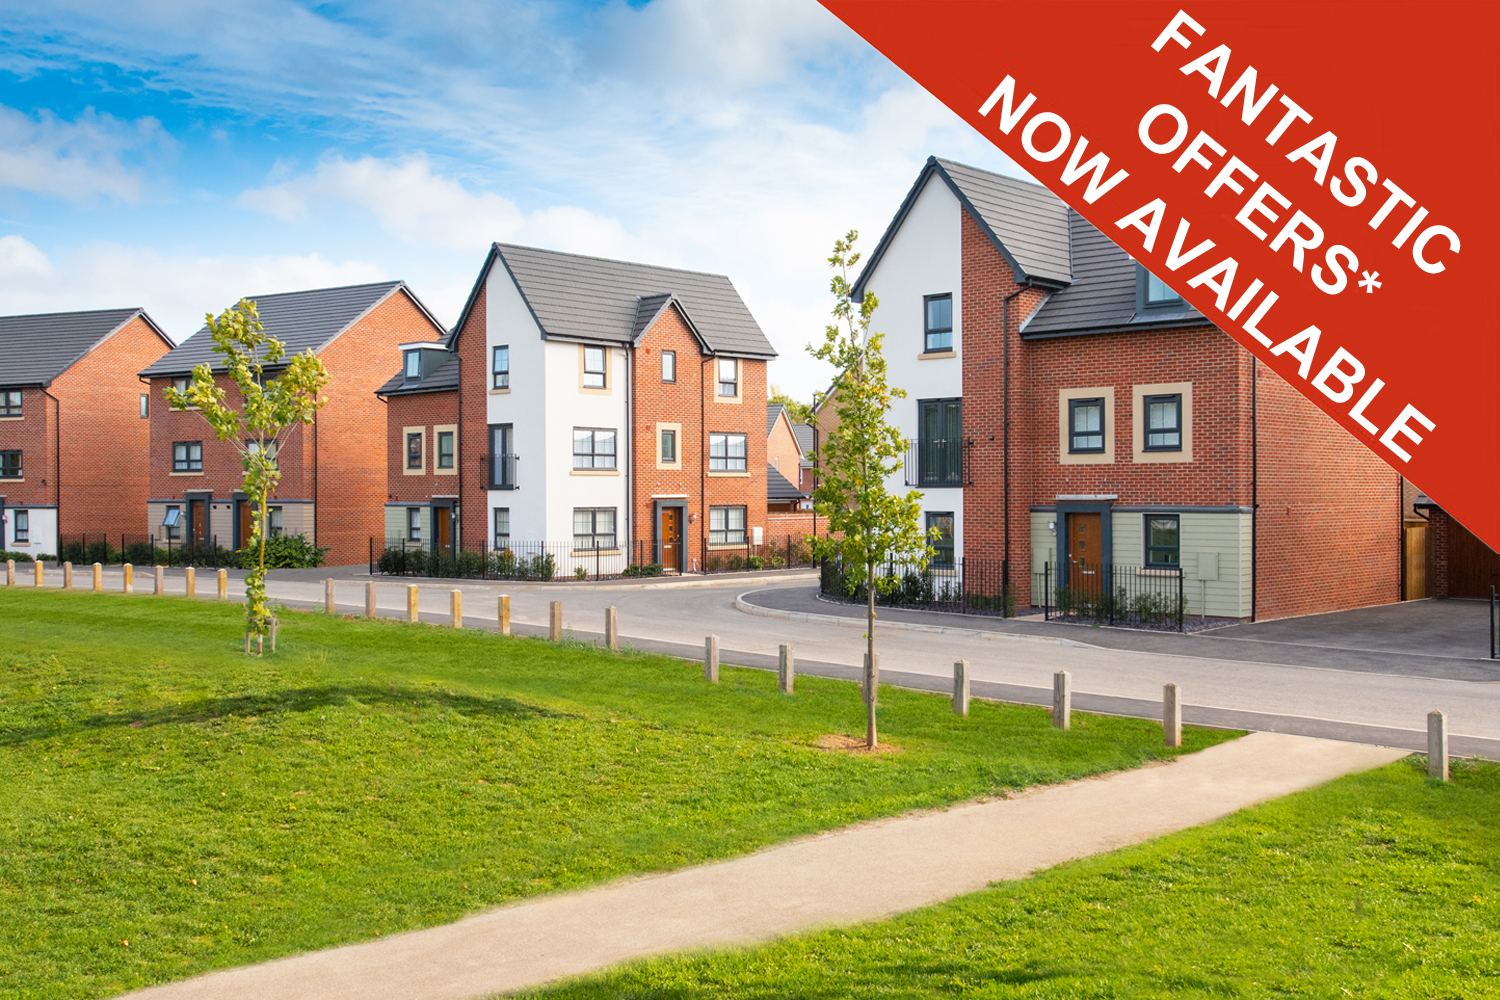 New Build Homes in Canley